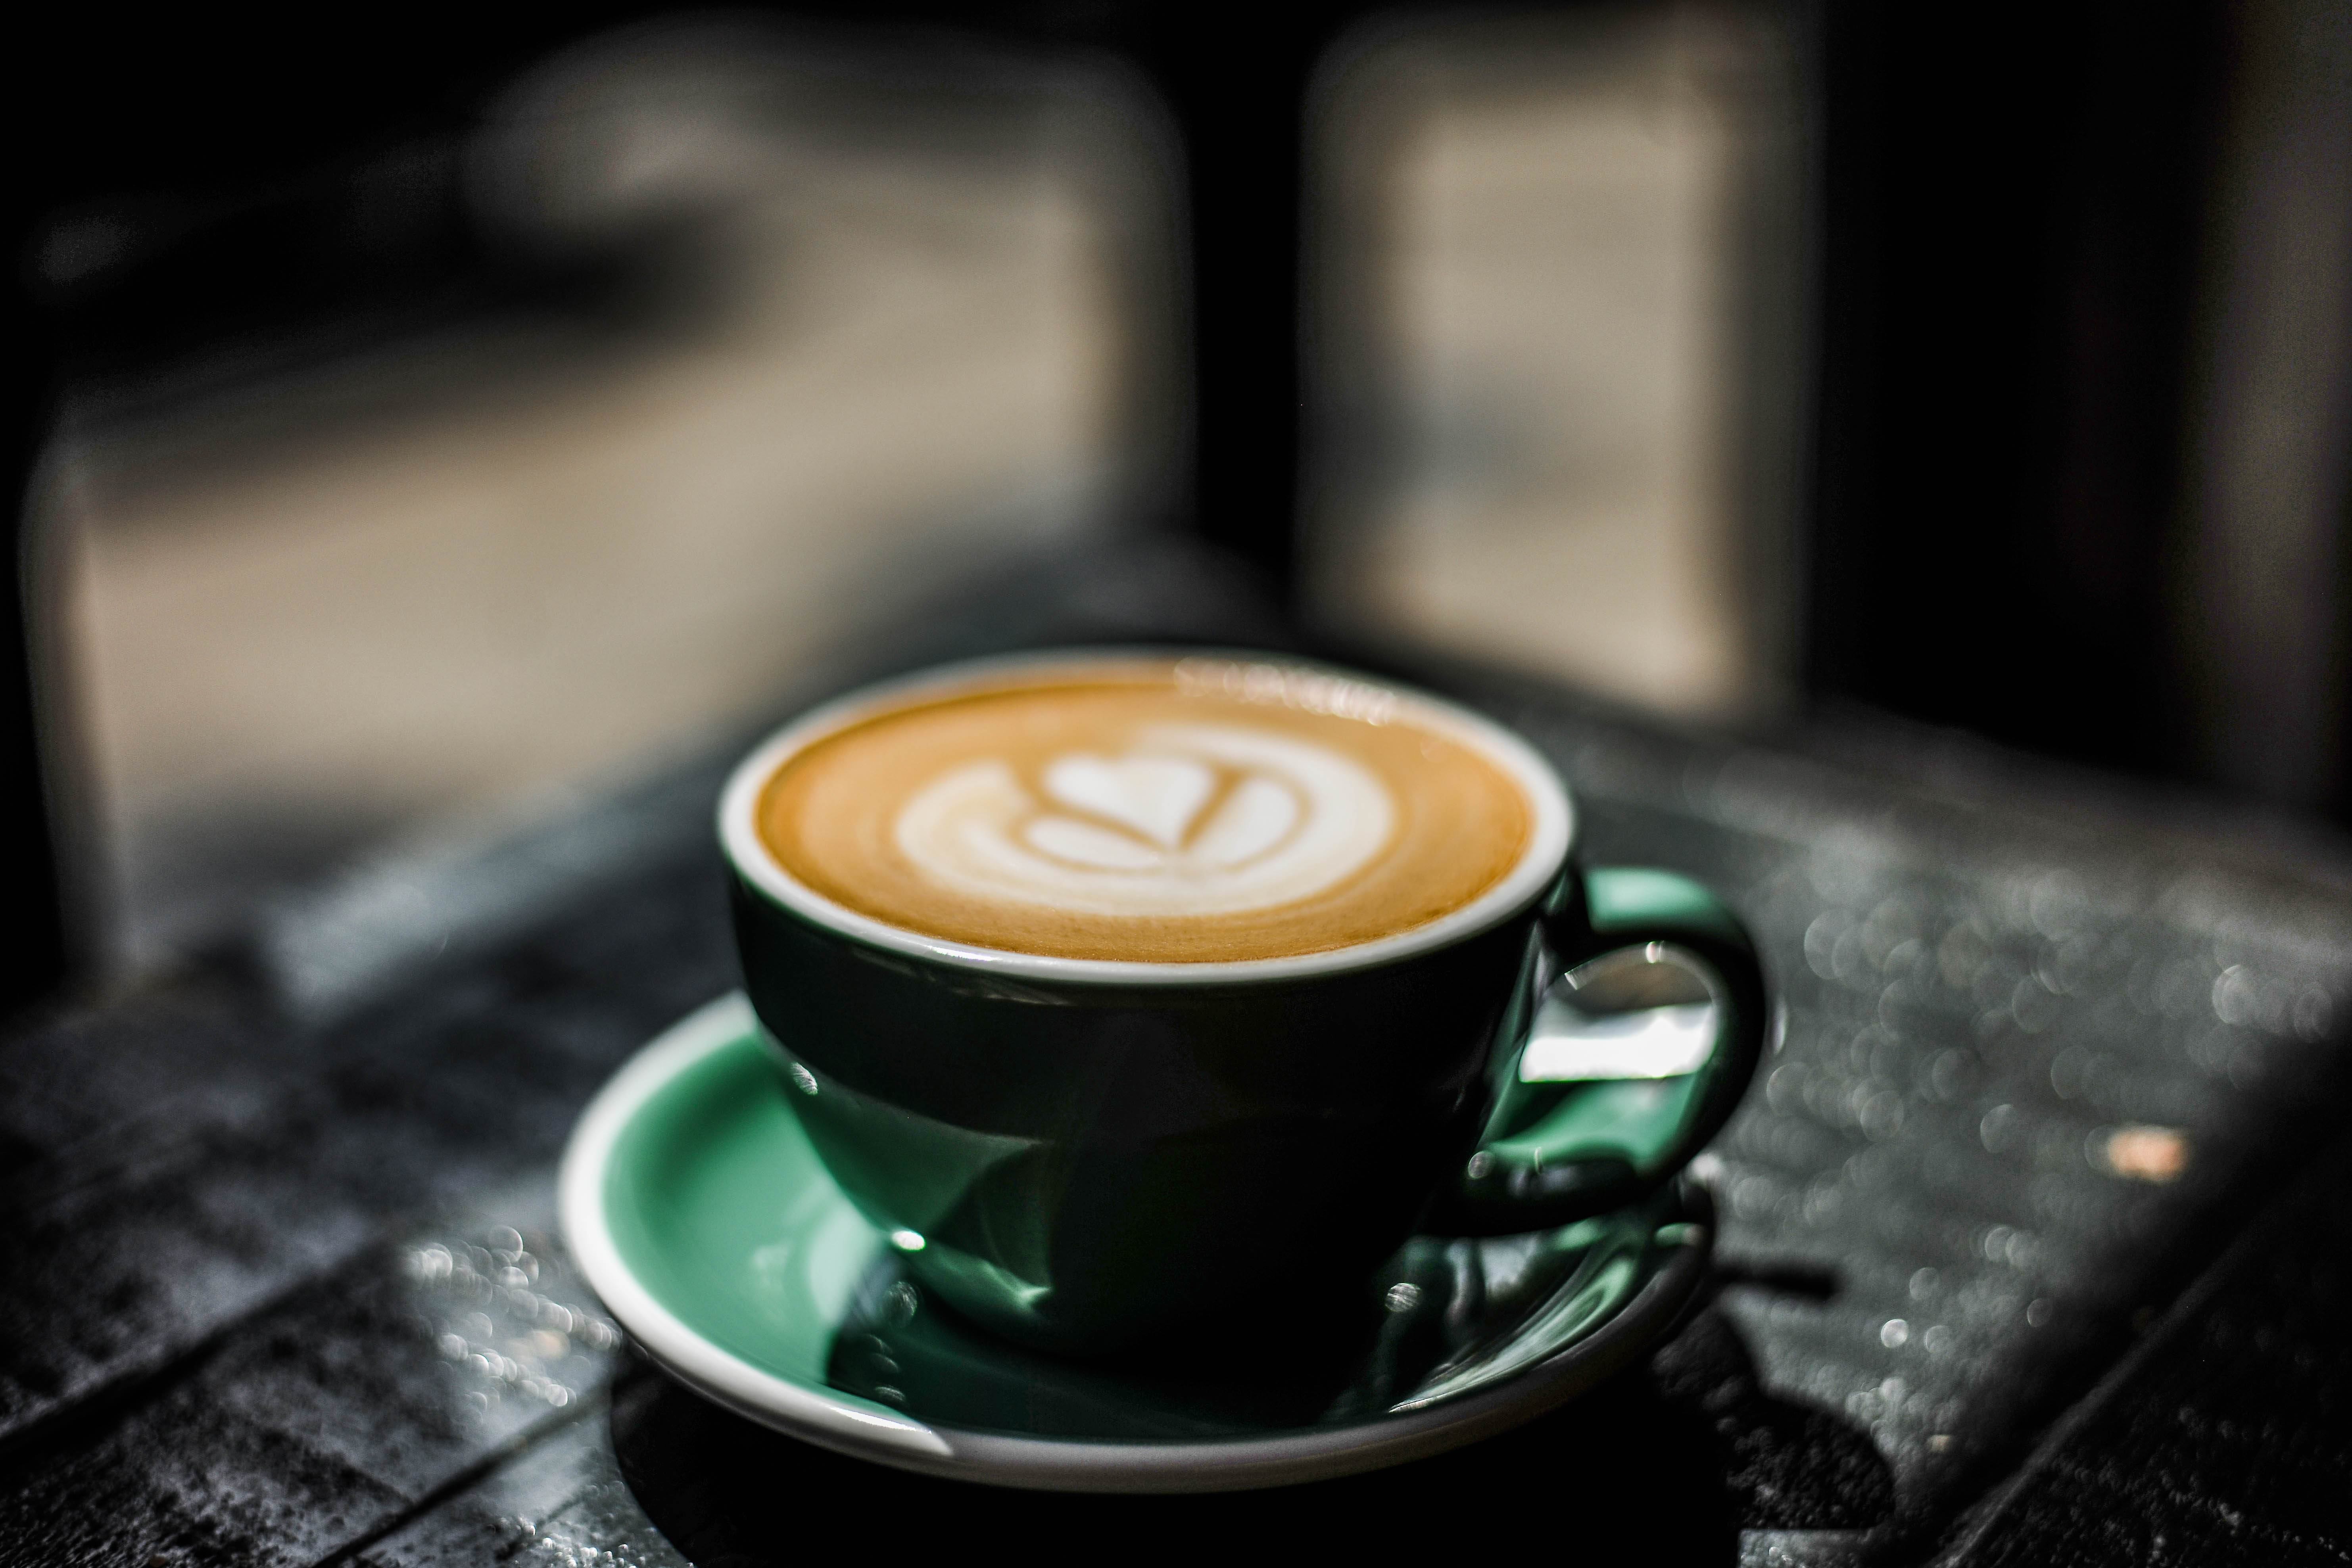 chermelle-d-edwards-cappuccino-coffeetography-east-one-coffee-roasters-may-2017